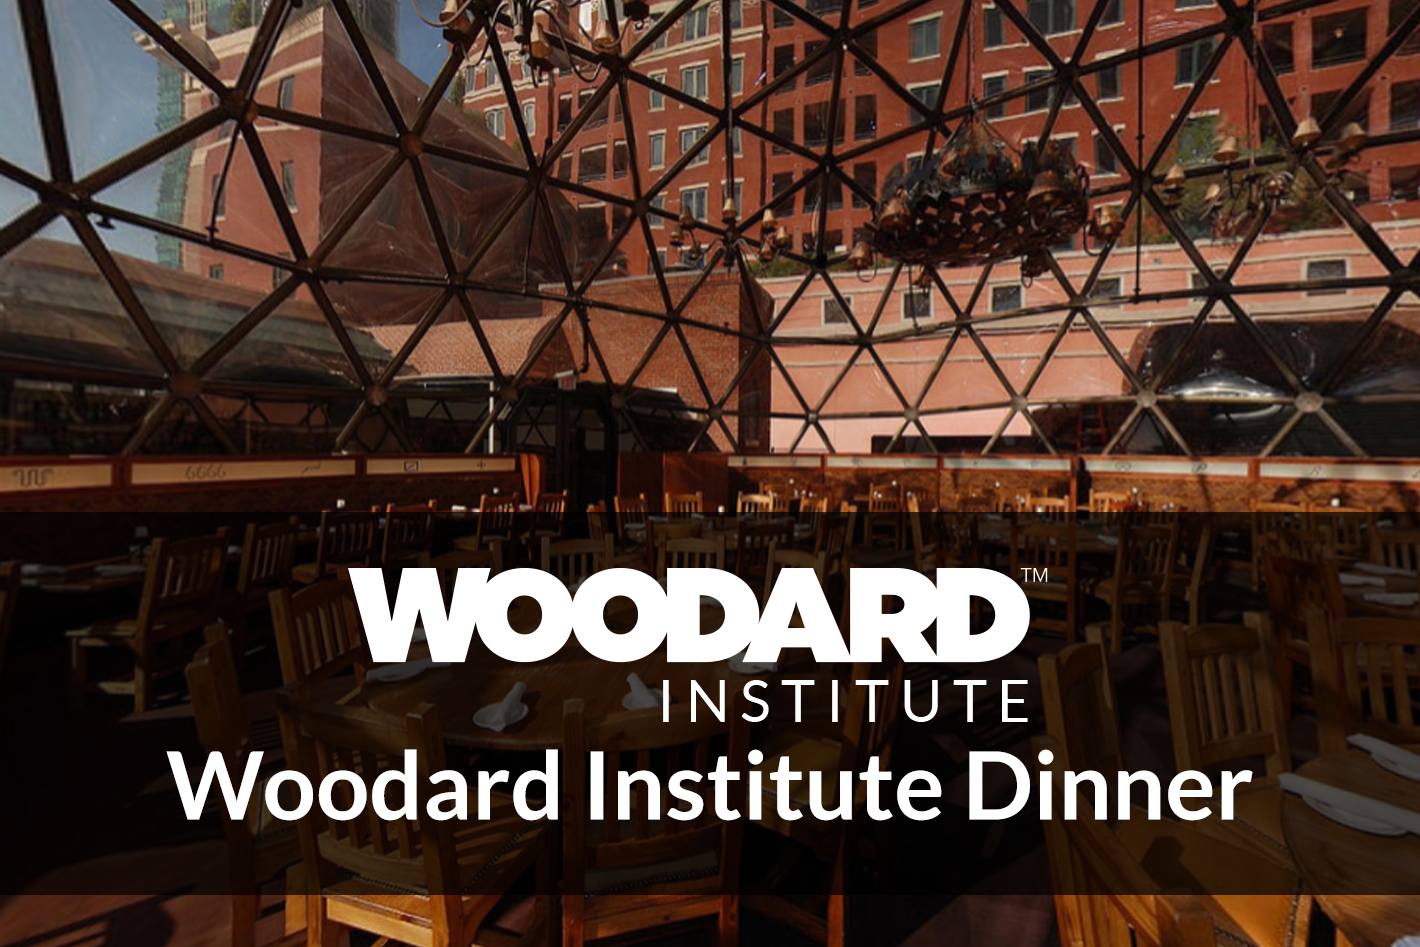 Background has a restaurant with a domed ceiling with windows in a triangular pattern. Foreground has white text on shaded dark box - reads Woodard Institute Dinner